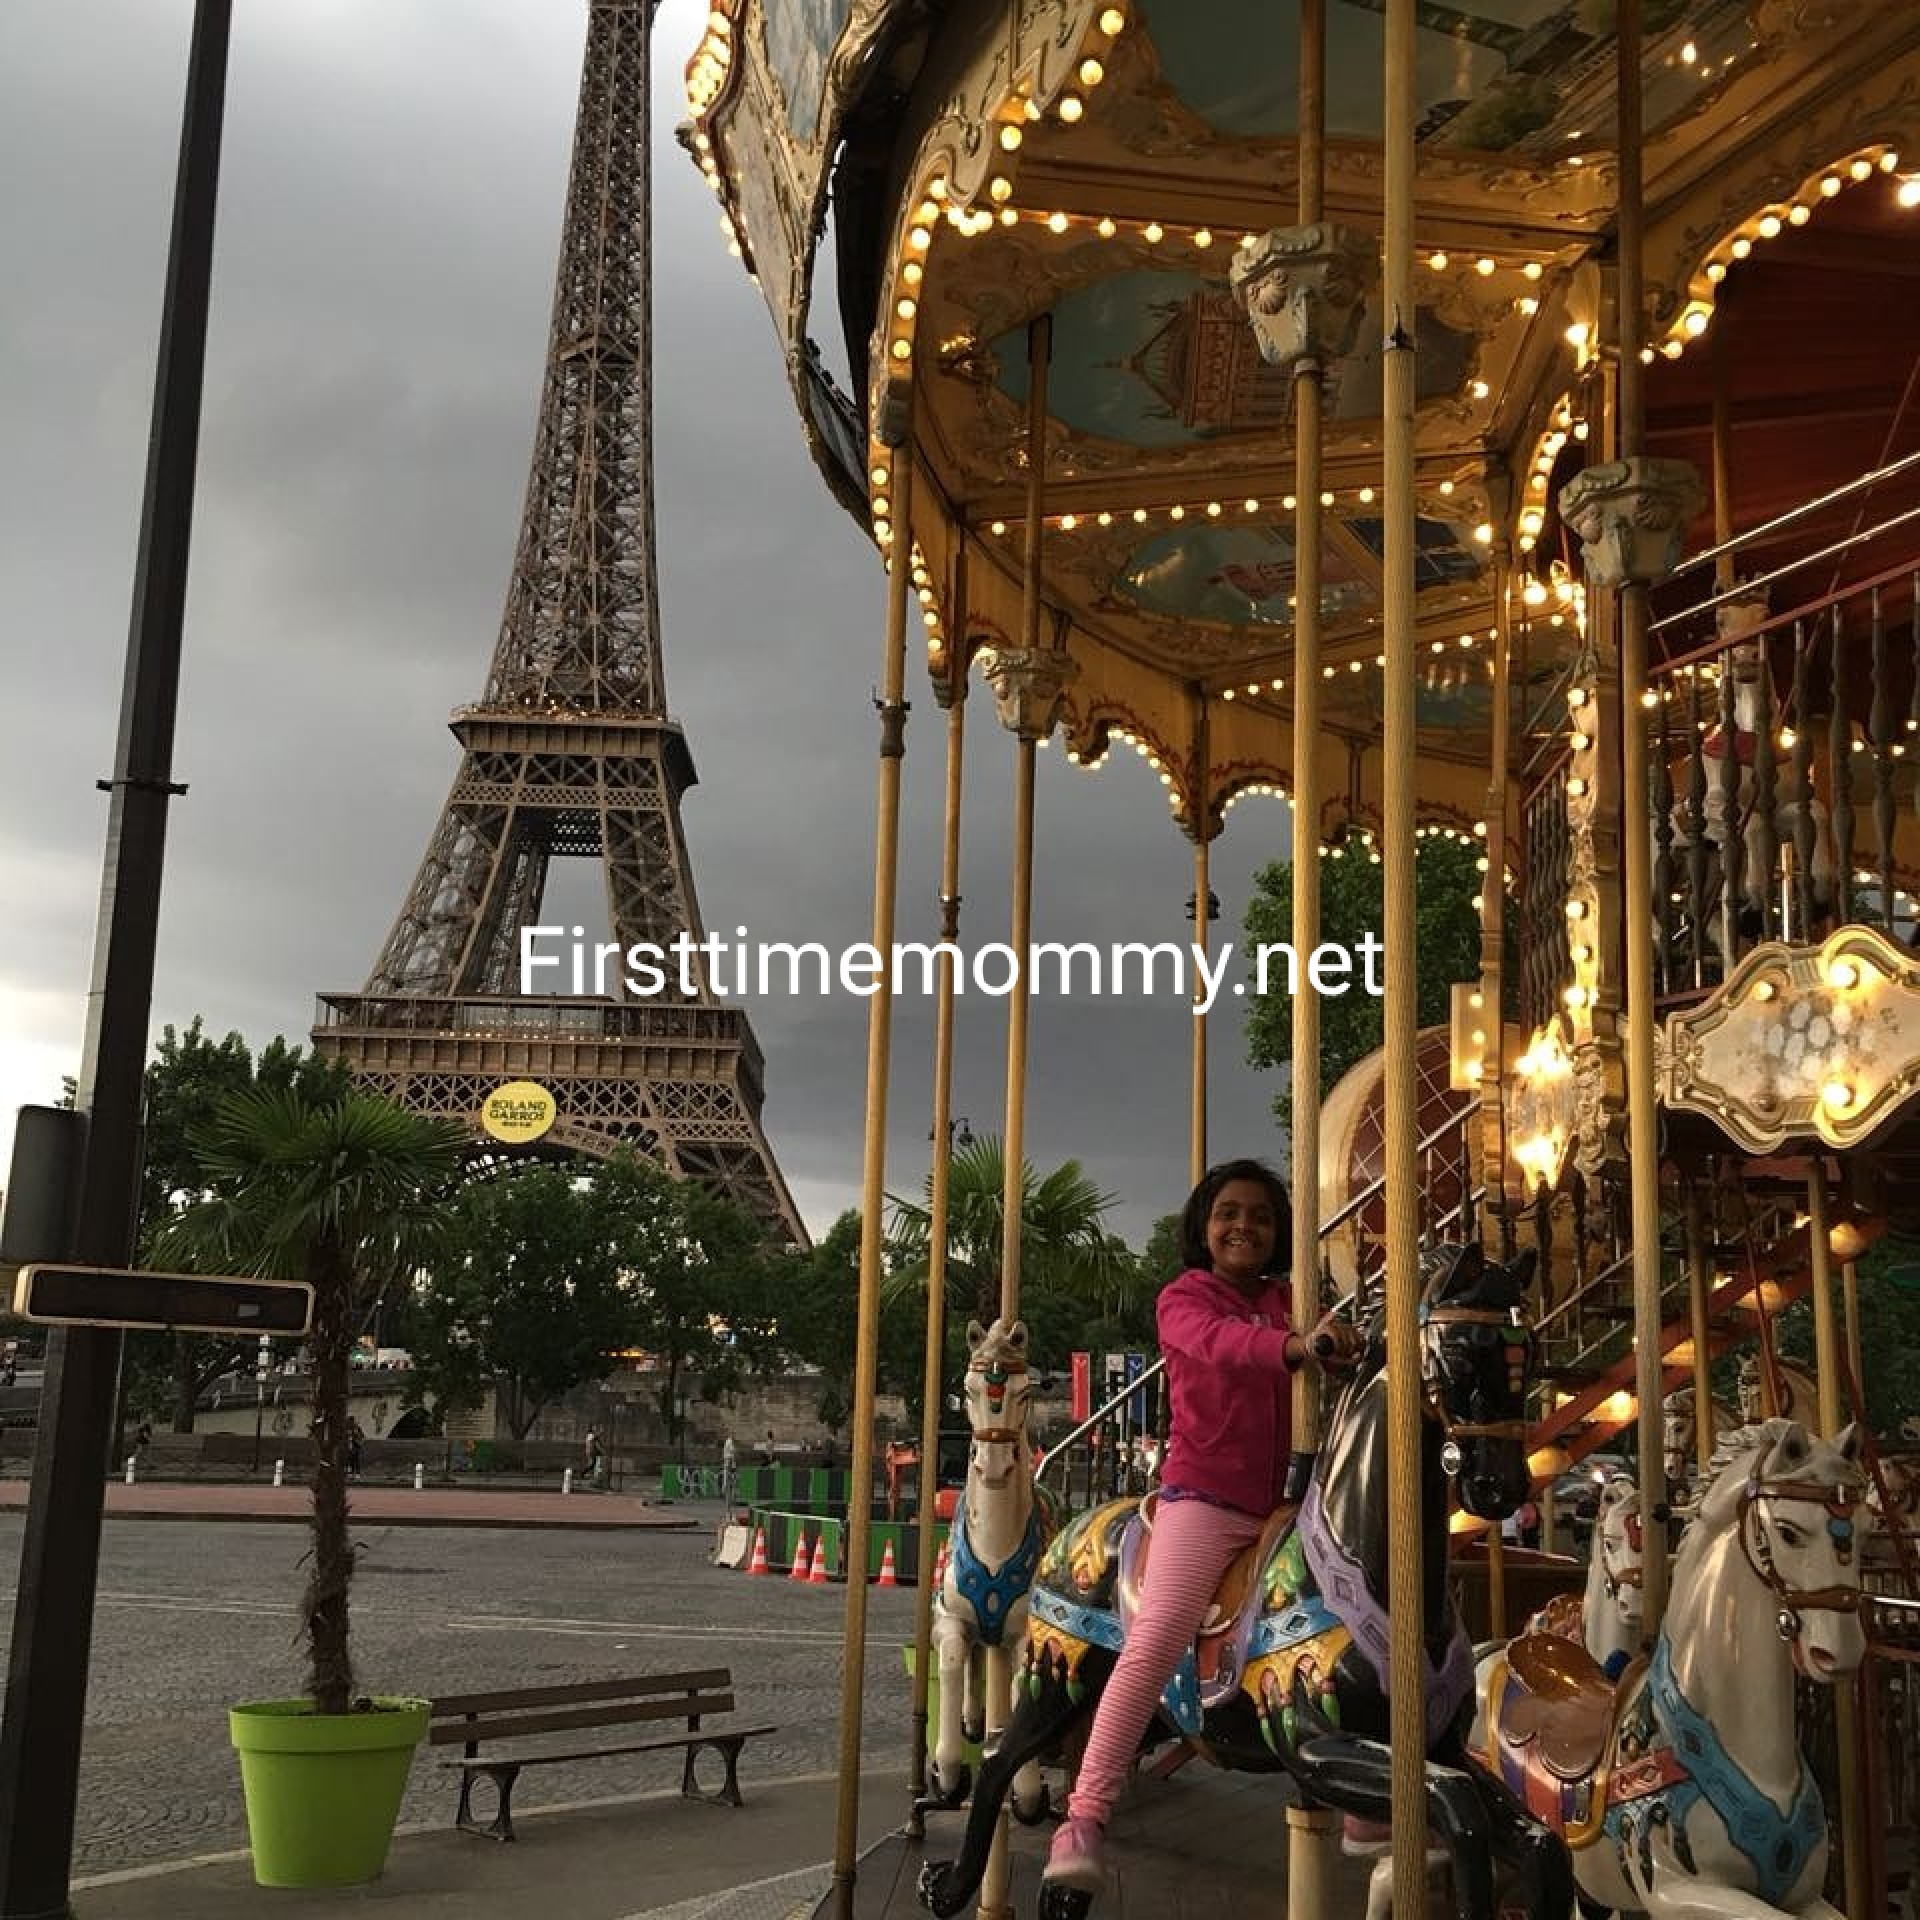 europe trip with kids, paris, seine, seine river, europe travel, budget travel to europe, eiffel tower, carousel,